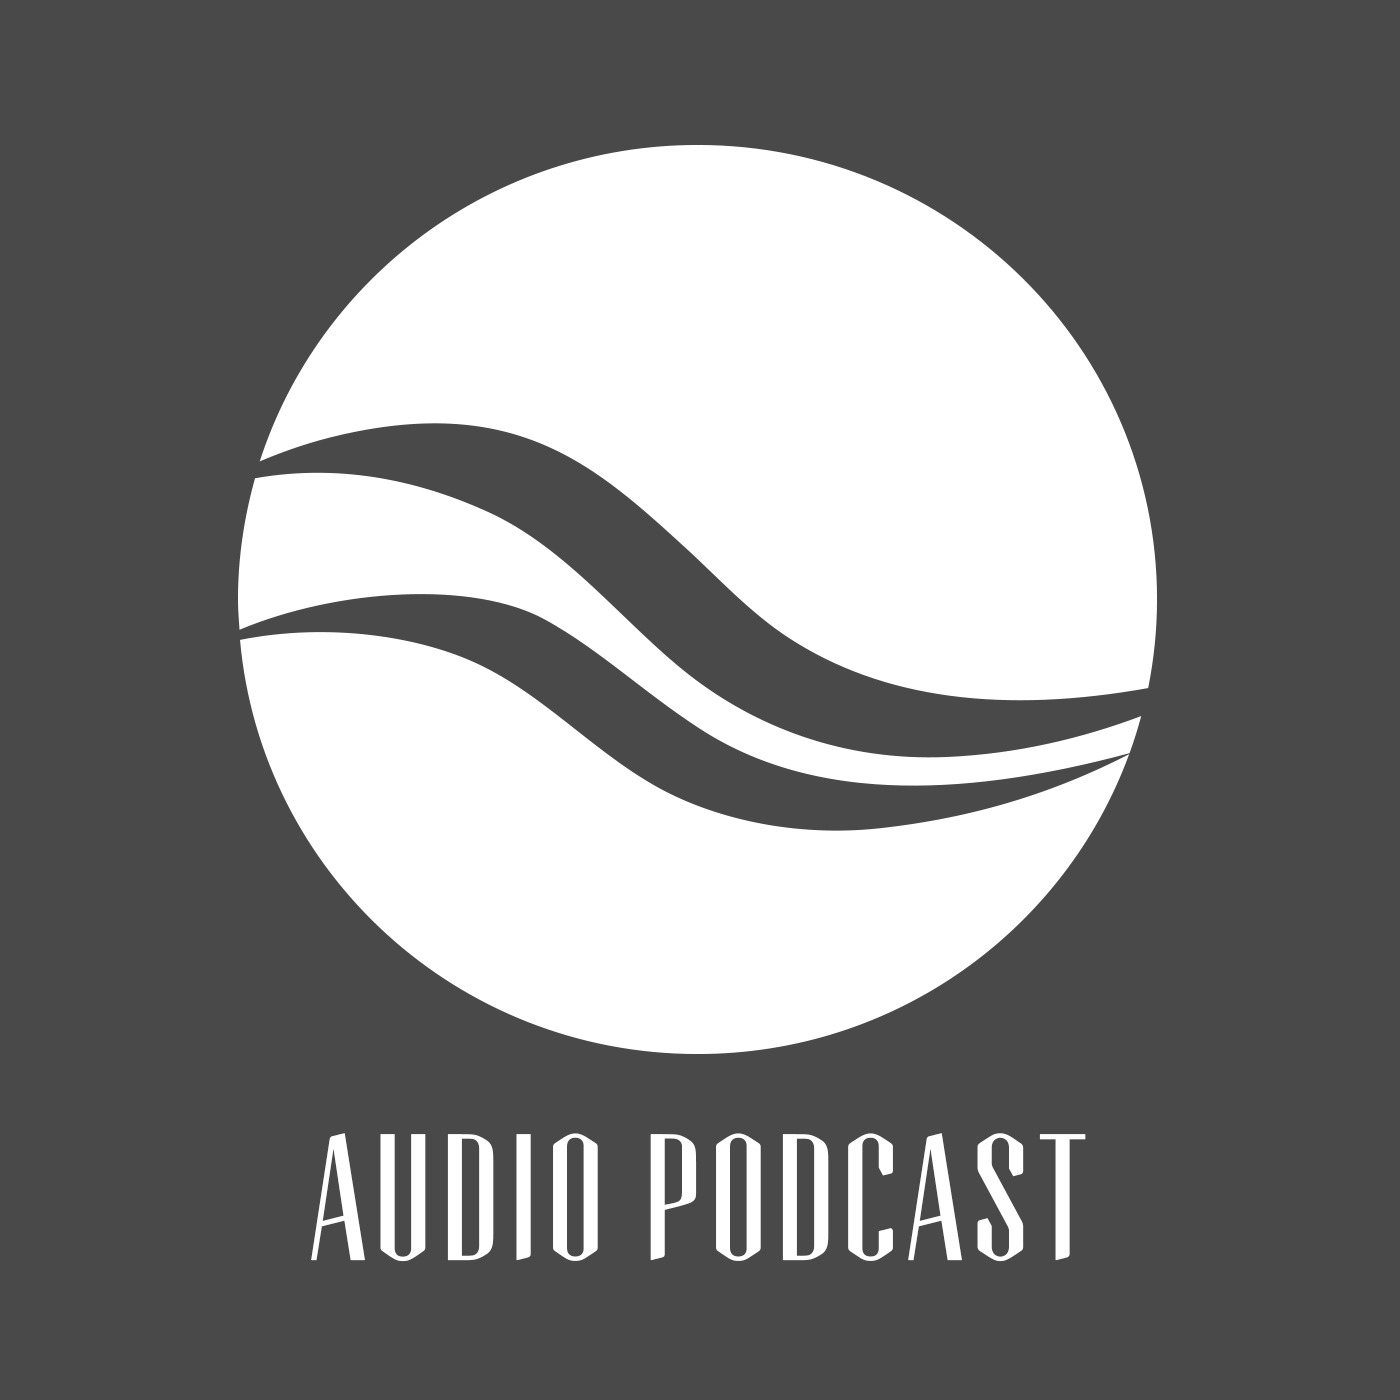 Audio Podcast - The Crossing Church